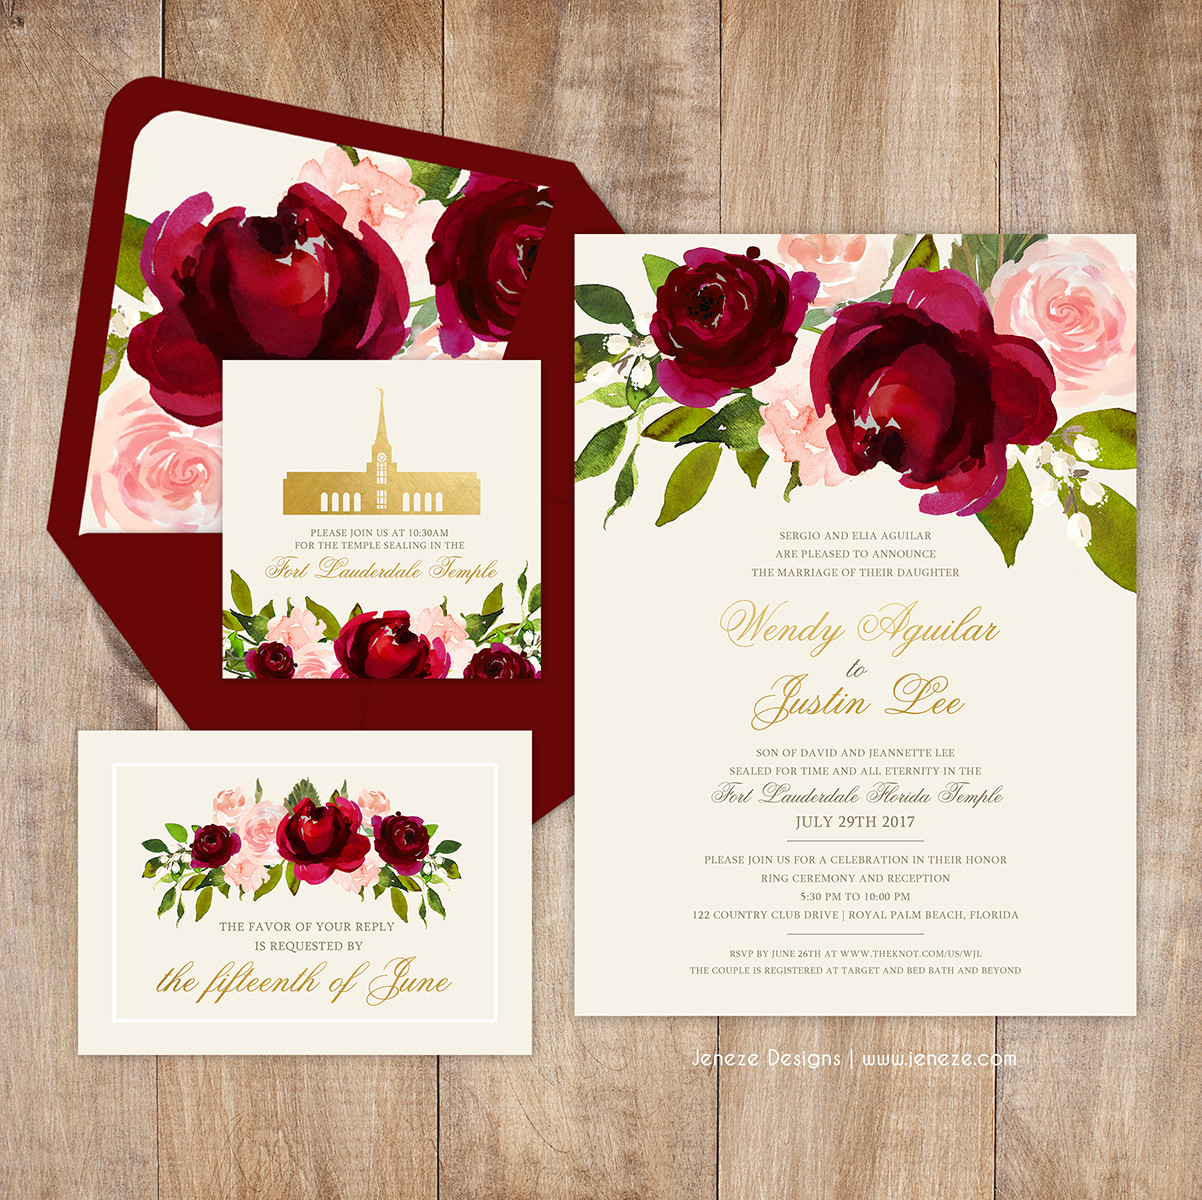 Jeneze Designs Custom Wedding Invitations | INVITATIONS